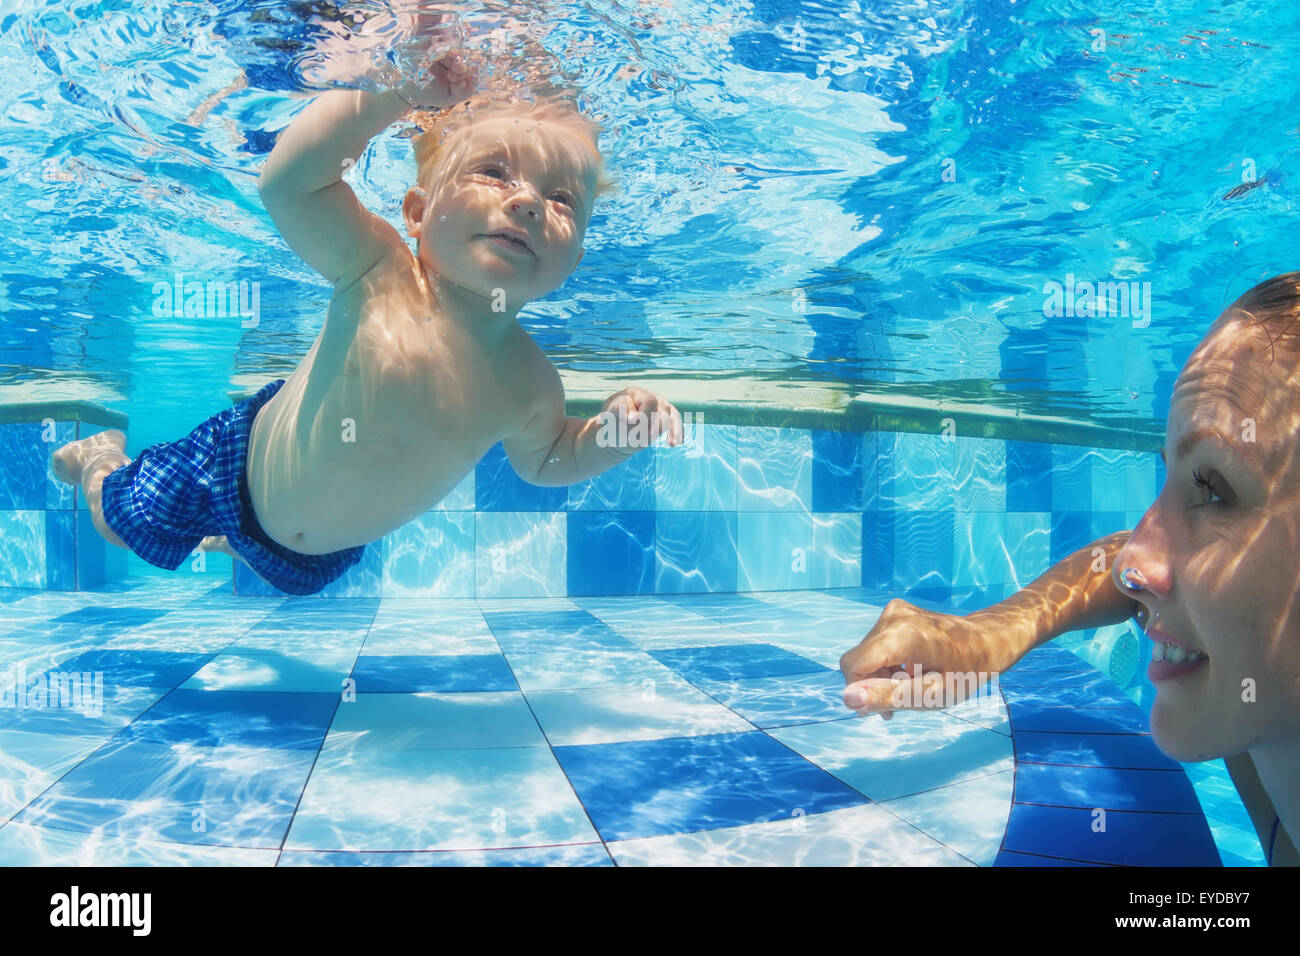 Portrait of child swimming with fun underwater in pool with diving cheerful mother. Stock Photo